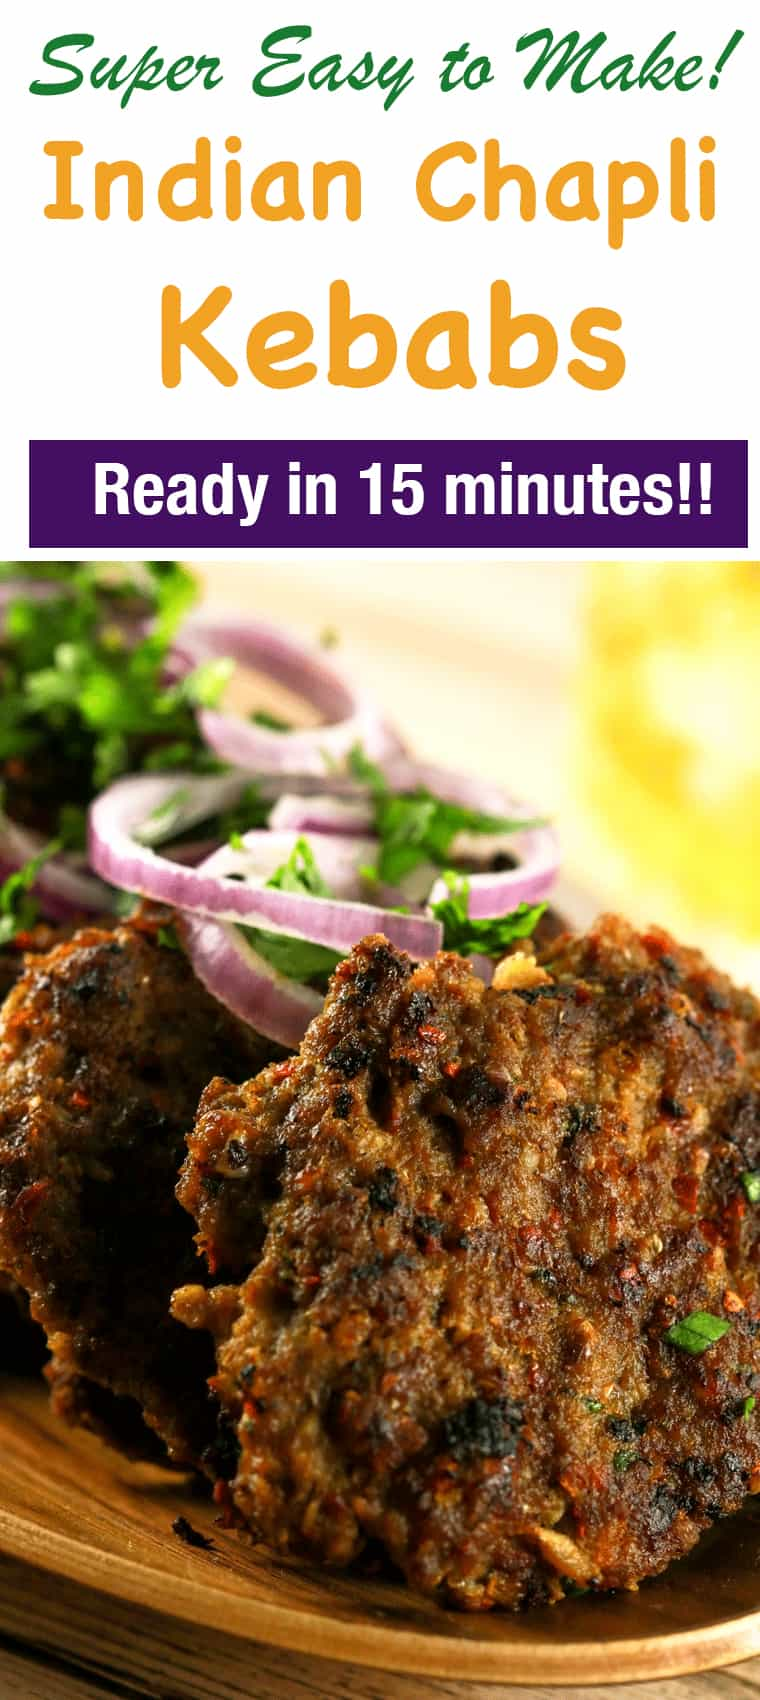 Spicy Indian Chapli Kebabs - These spicy Indian Chapli Kebabs will leave you wanting more! They're super delicious doesn't require any ingredients that are difficult to find! And what's even better is that you can make these in under 20 minutes!!   ScrambledChefs.com